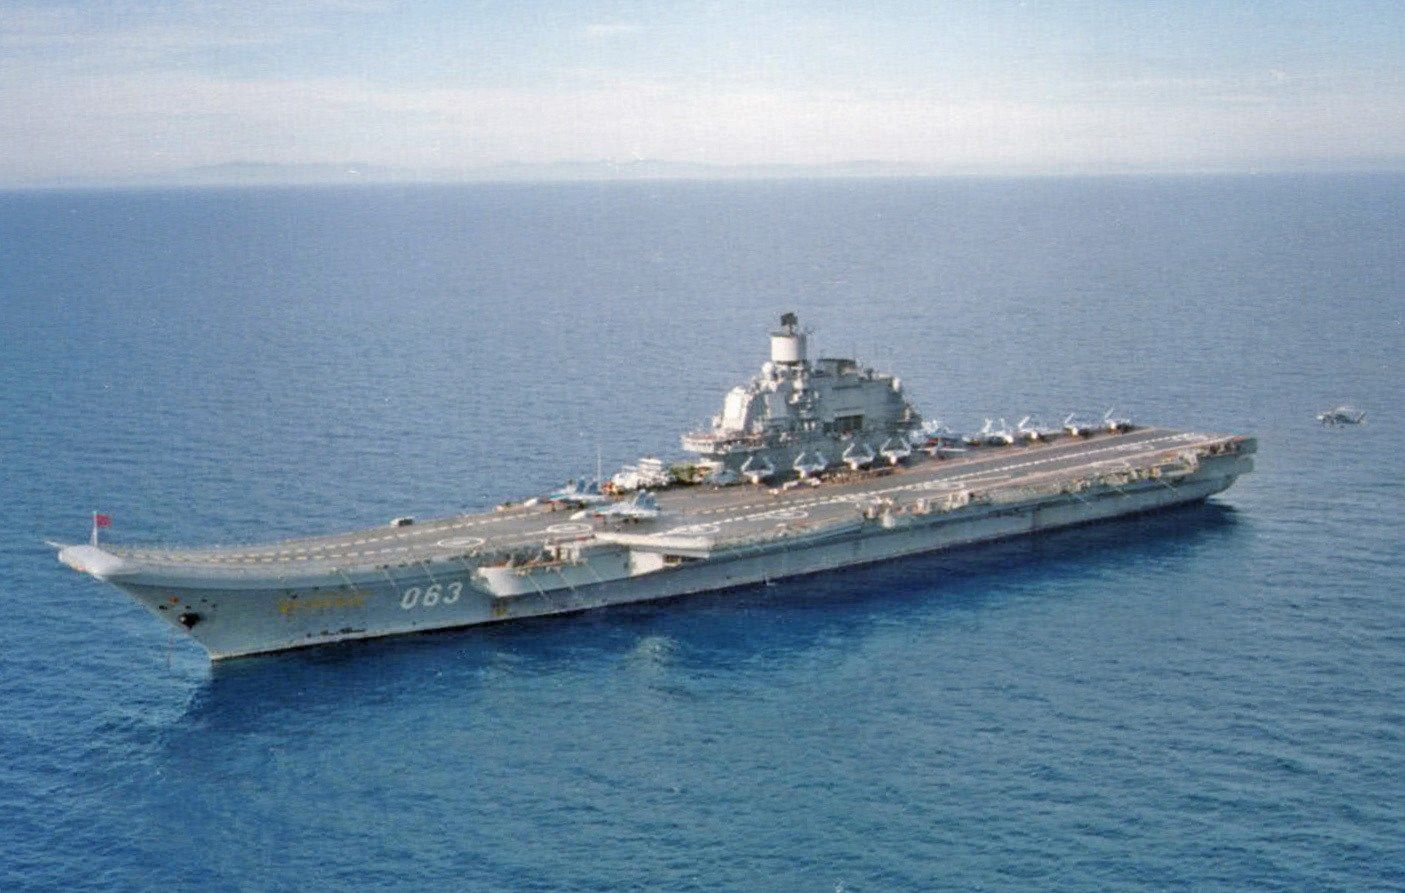 russian aircraft carrier admiral kuznetsov pictures for desktop (Gable Jones 1405x893)